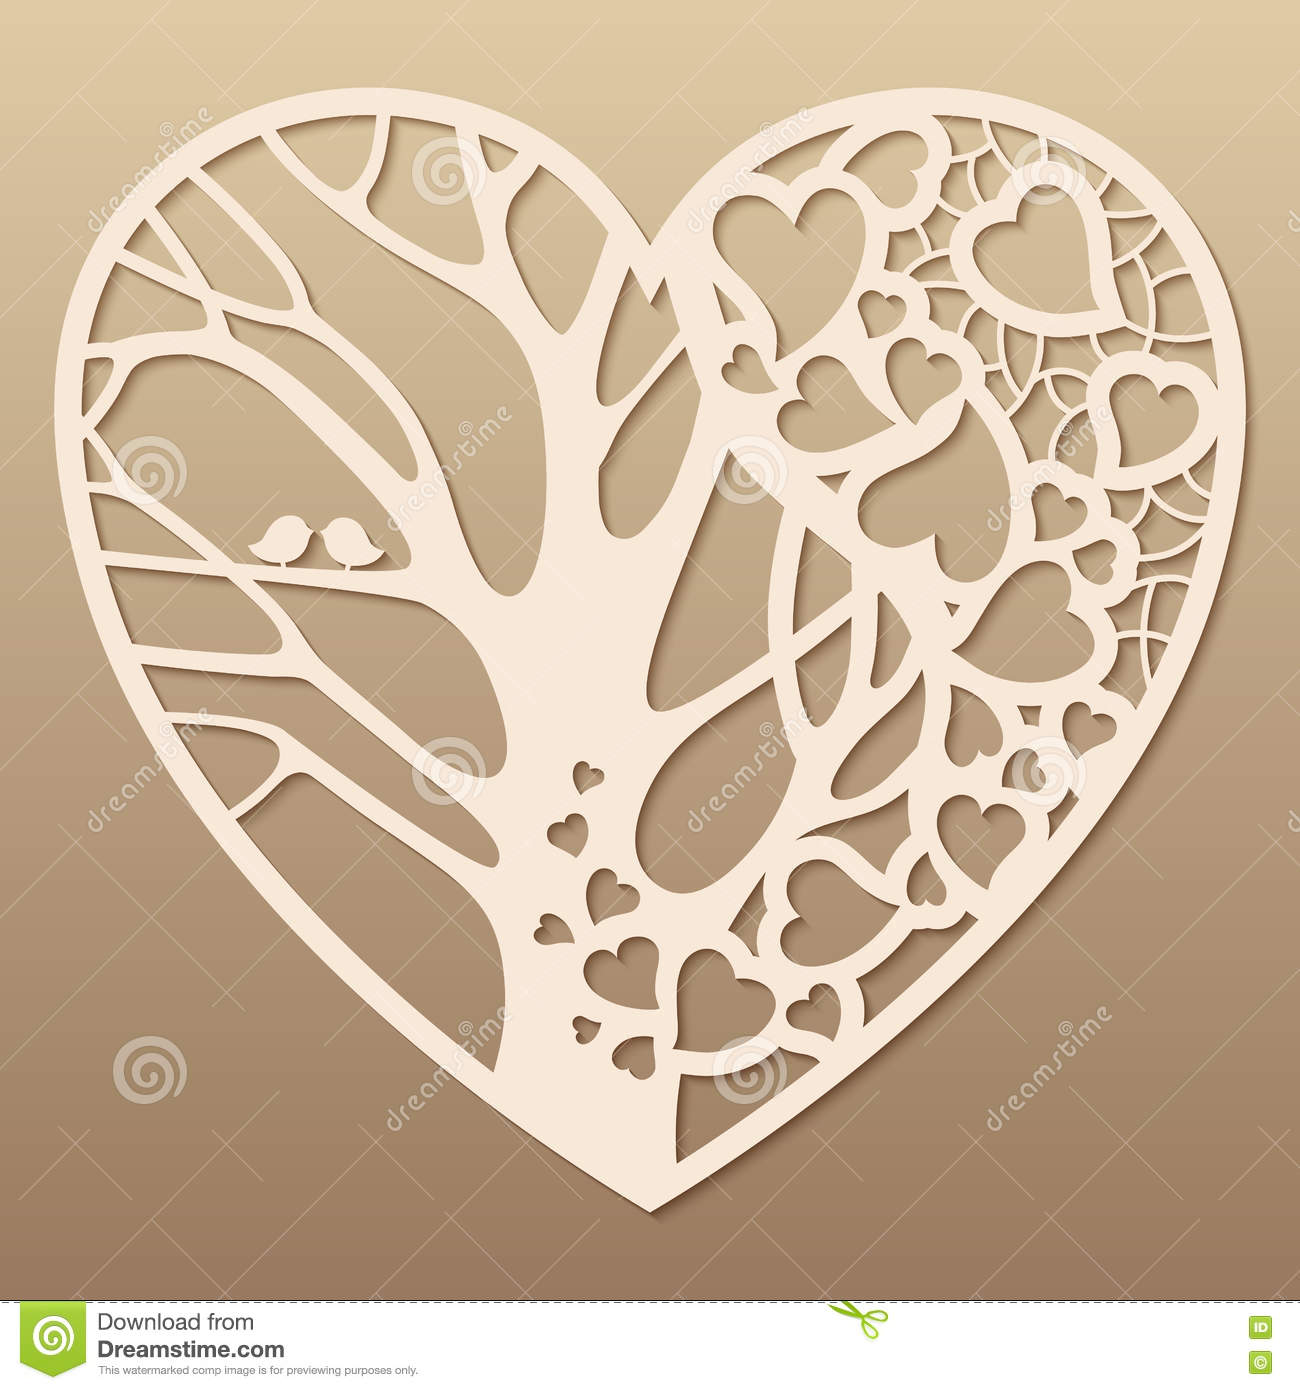 Openwork heart with a tree inside stock vector for Free laser cutter templates